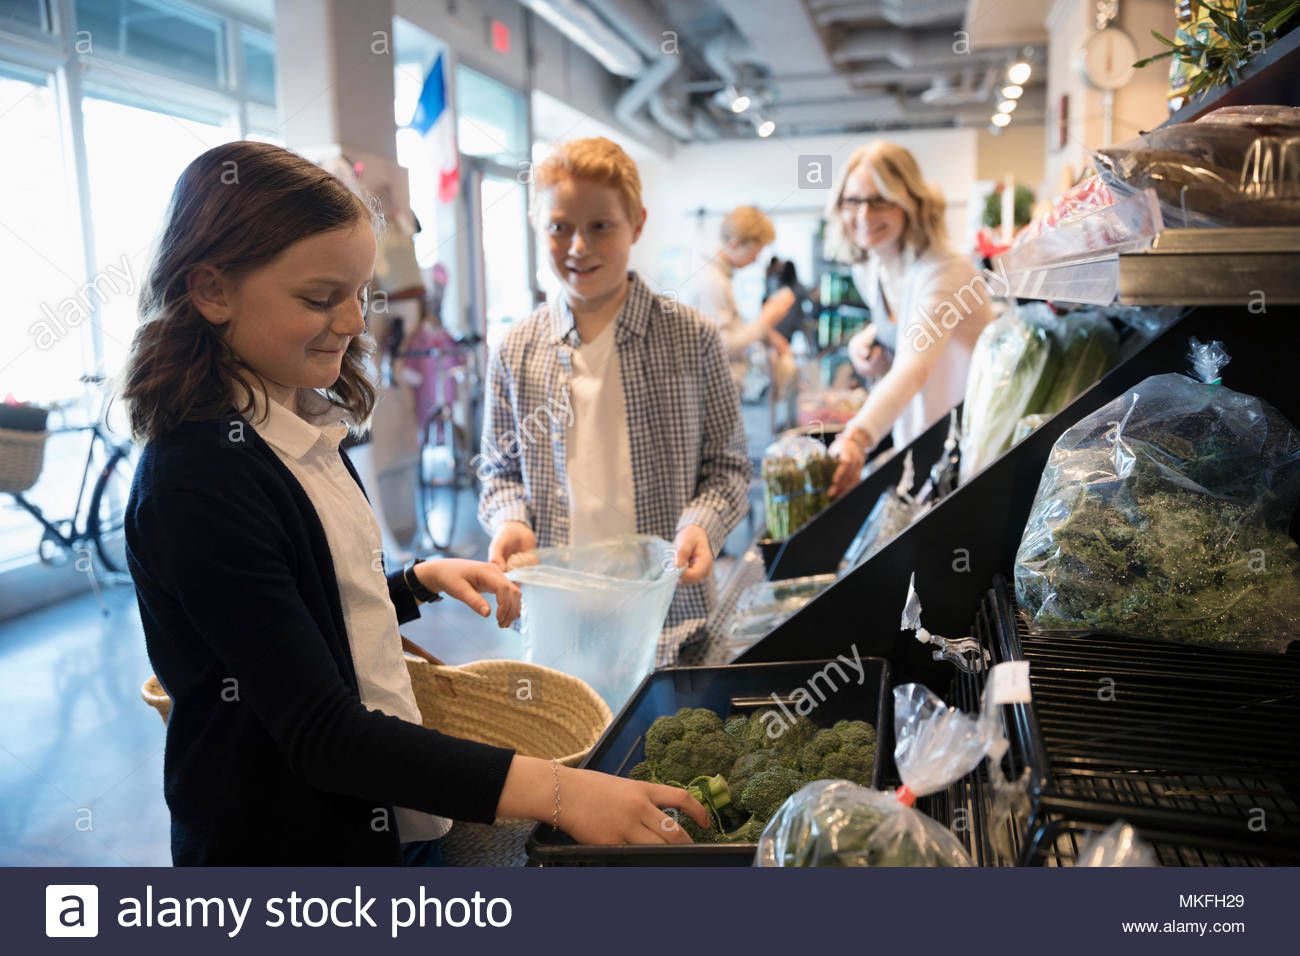 Girl grocery shopping with family, picking out broccoli in market - Stock Image